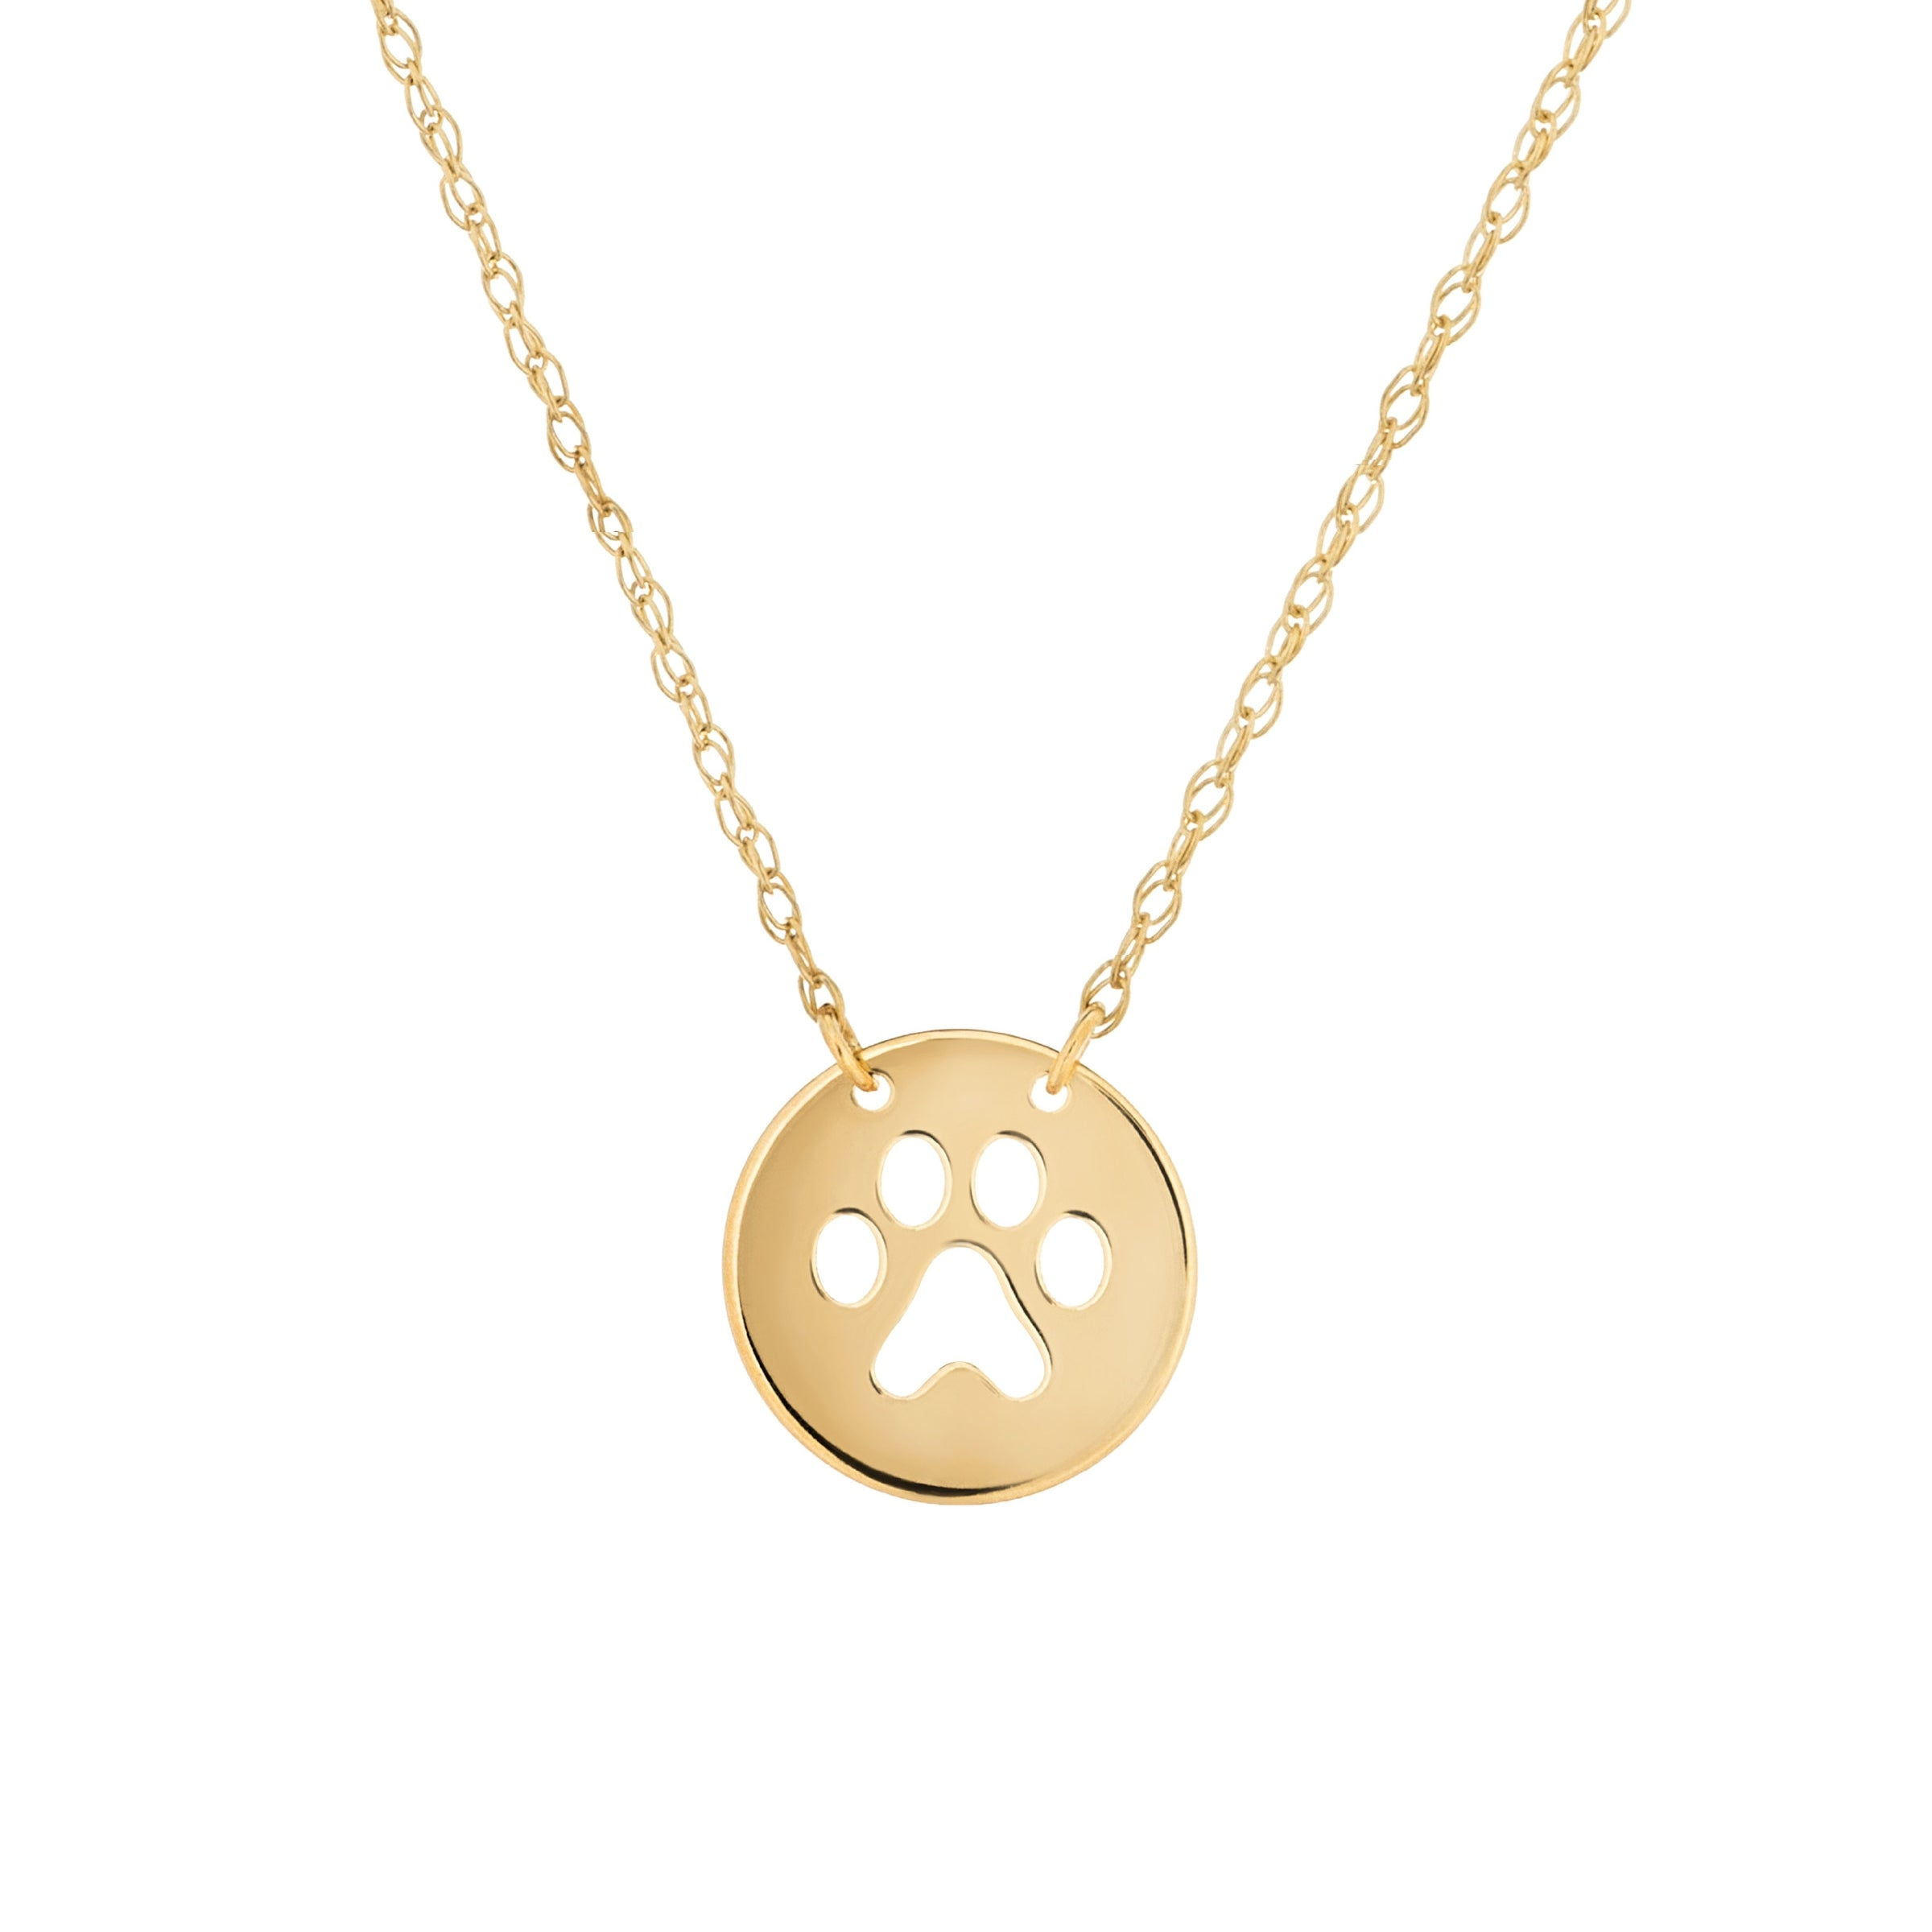 Cat Dog Paw Print Cut Out Necklace, 14K Yellow Gold